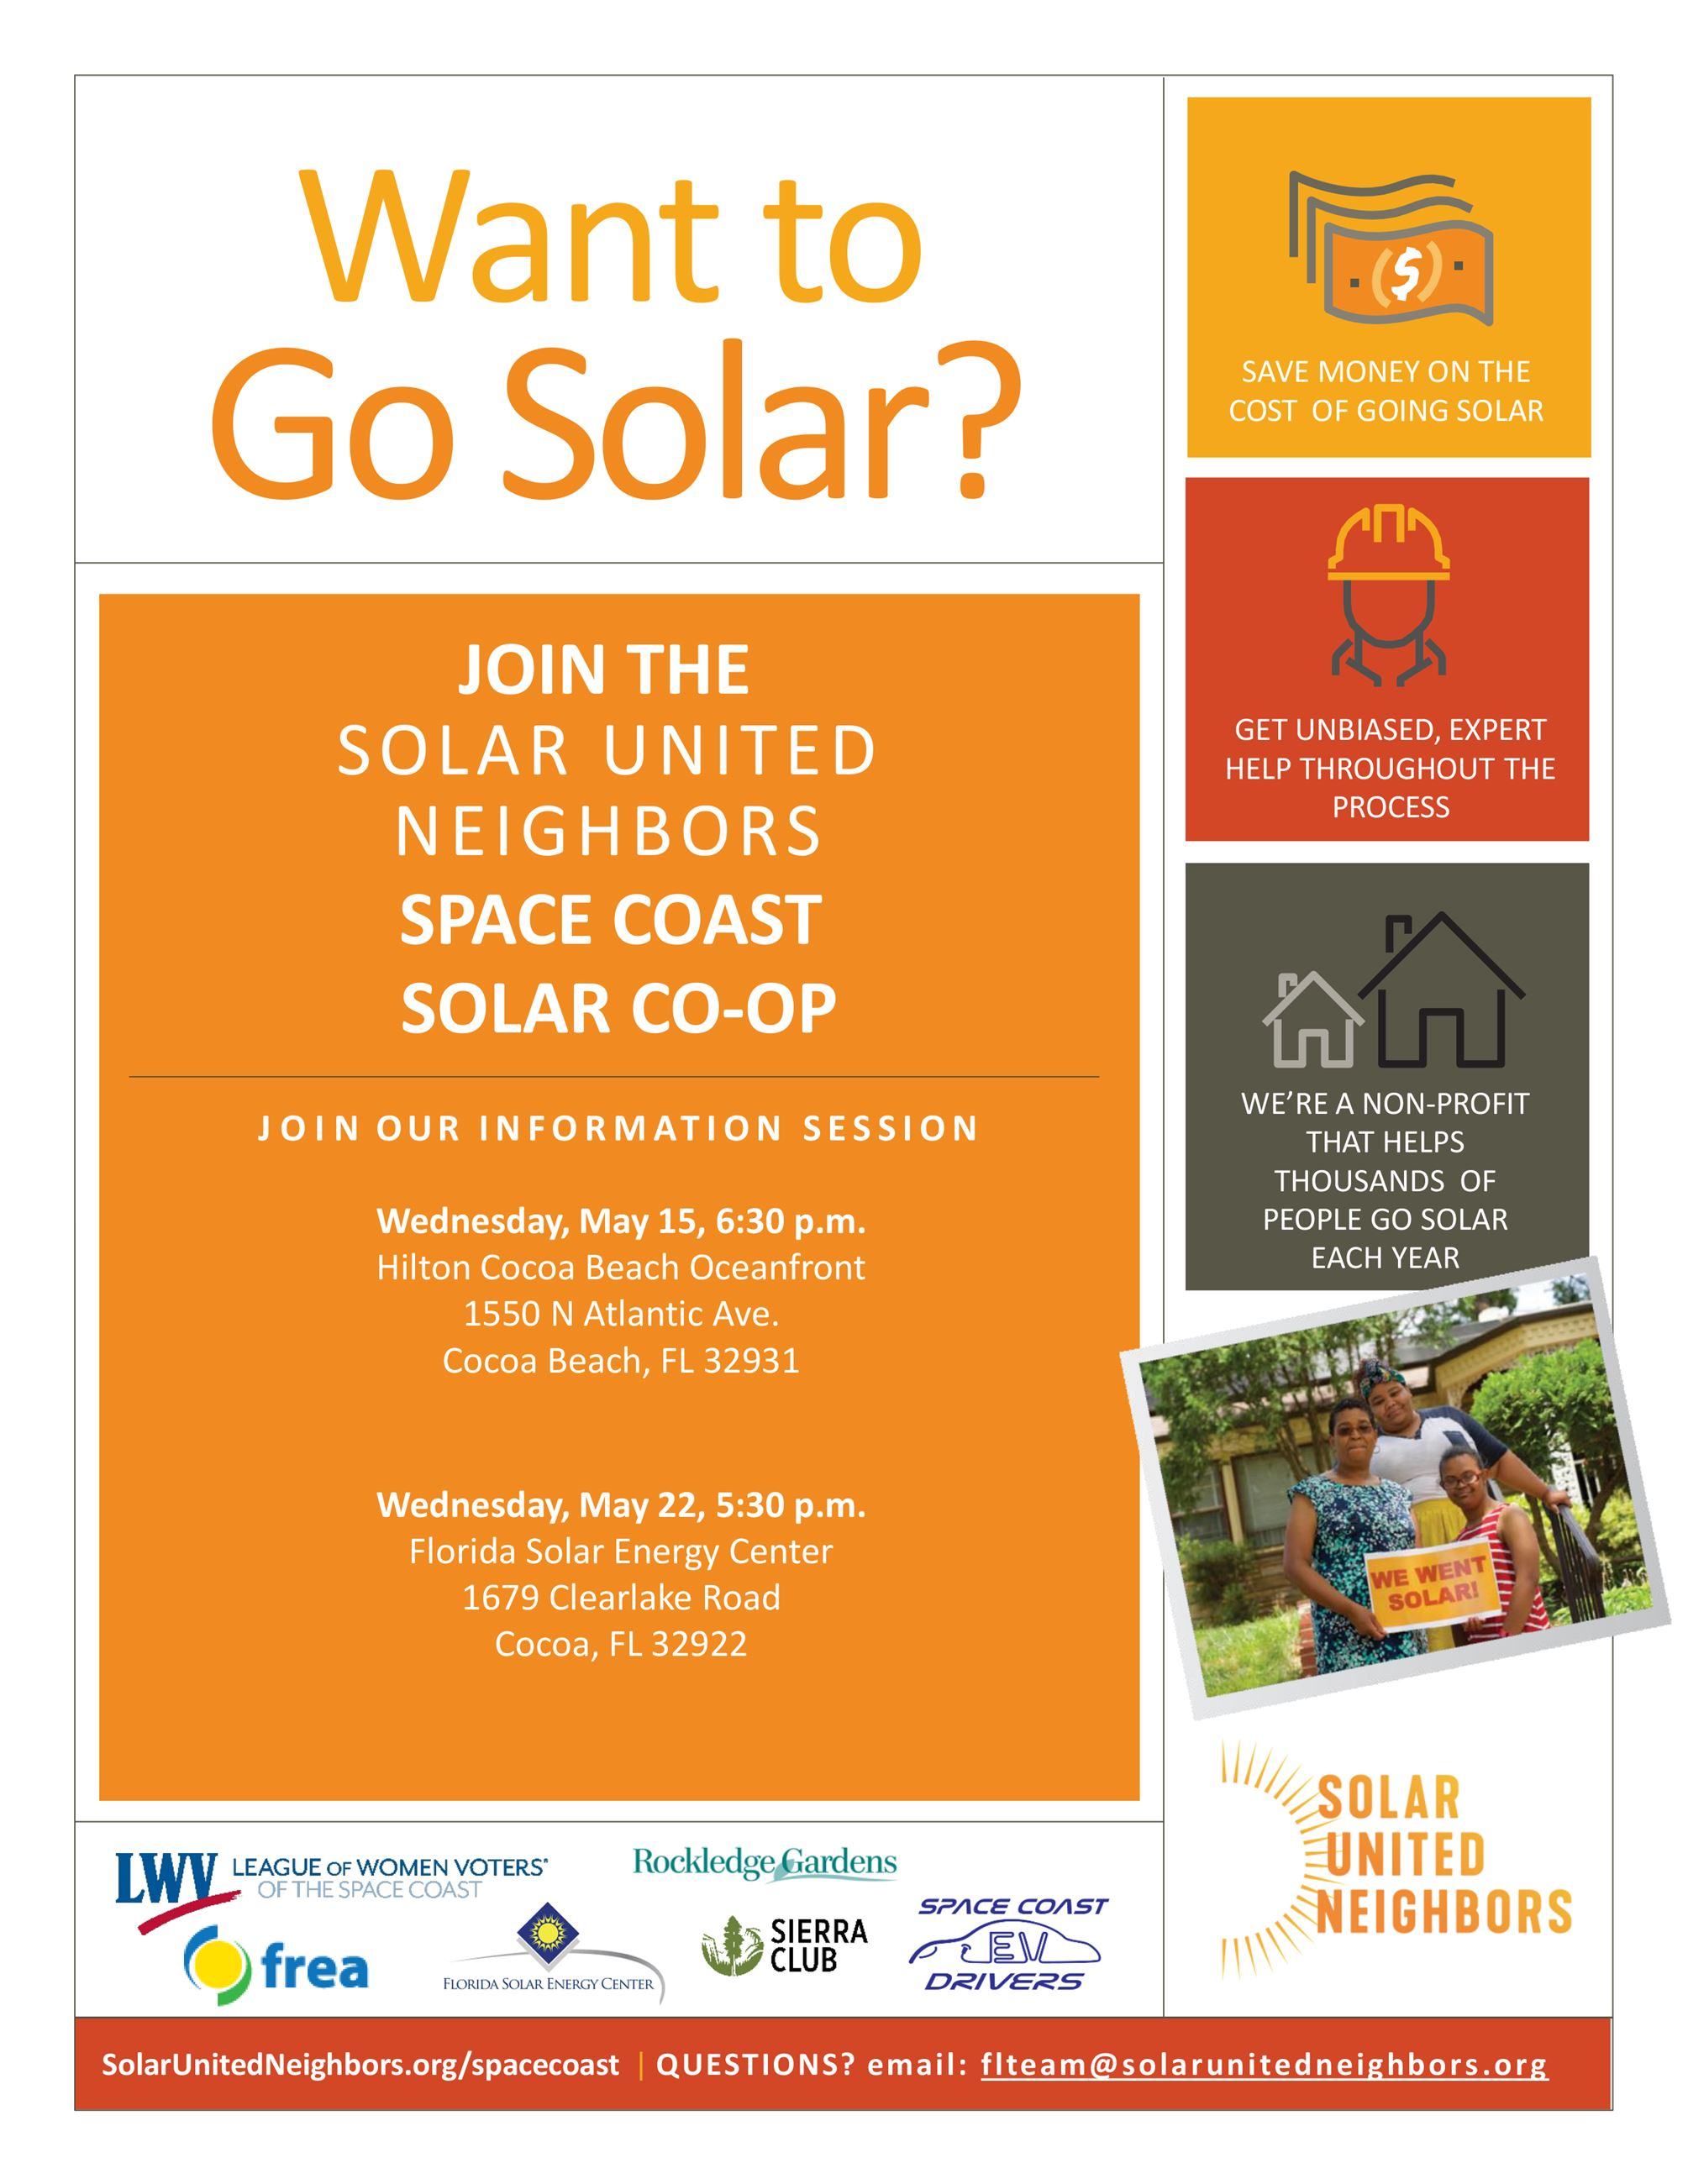 Go Solar Flyer with oranges and yellows, money and home imagery with photo of a family holding a sig